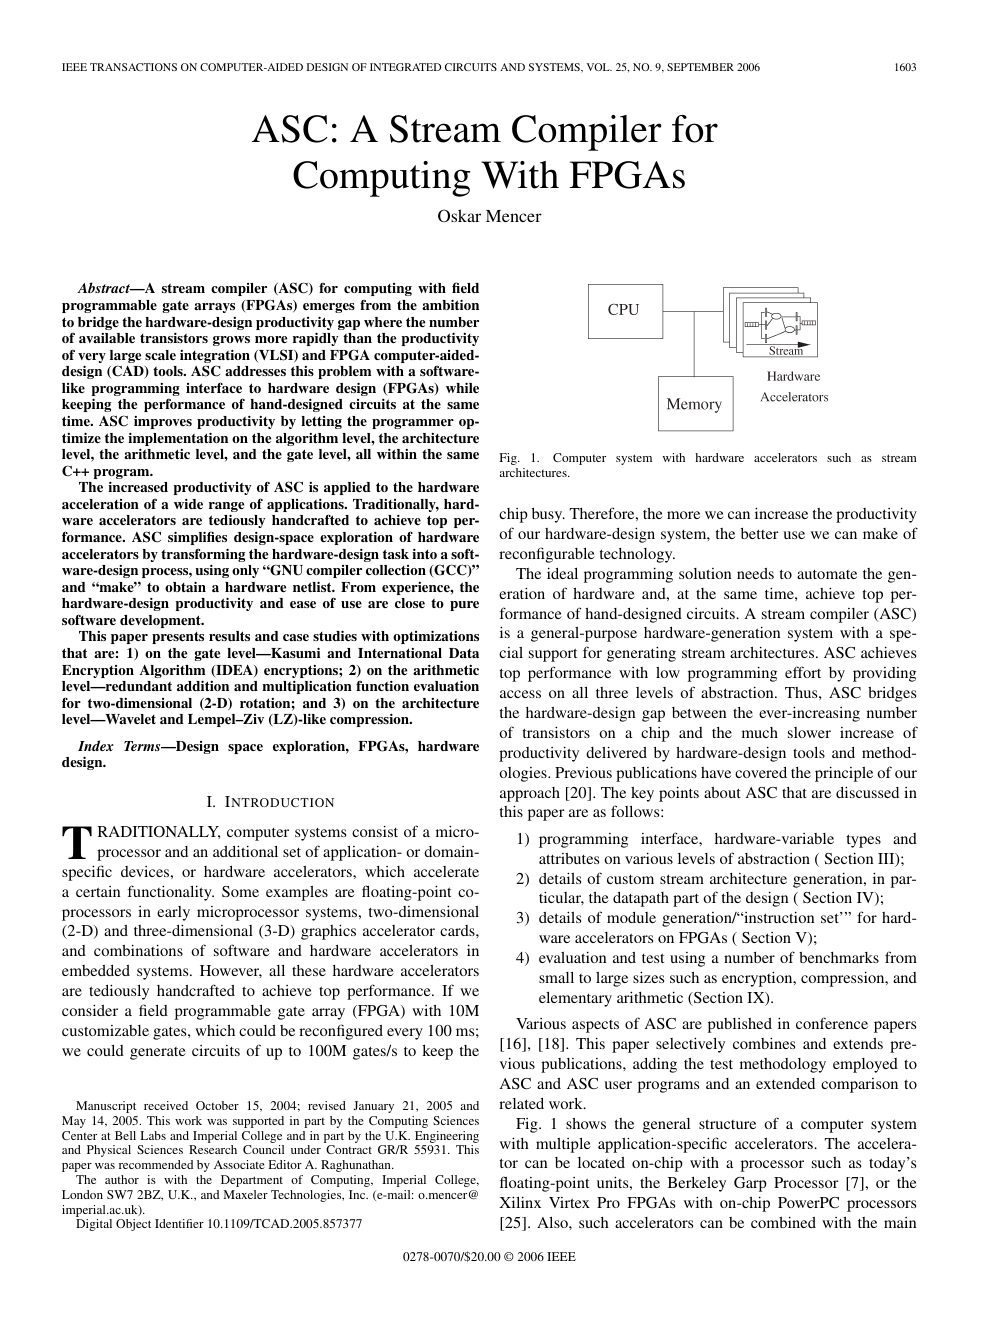 008 Research Paper Ieee Papers In Computer Science Phenomenal Pdf Full